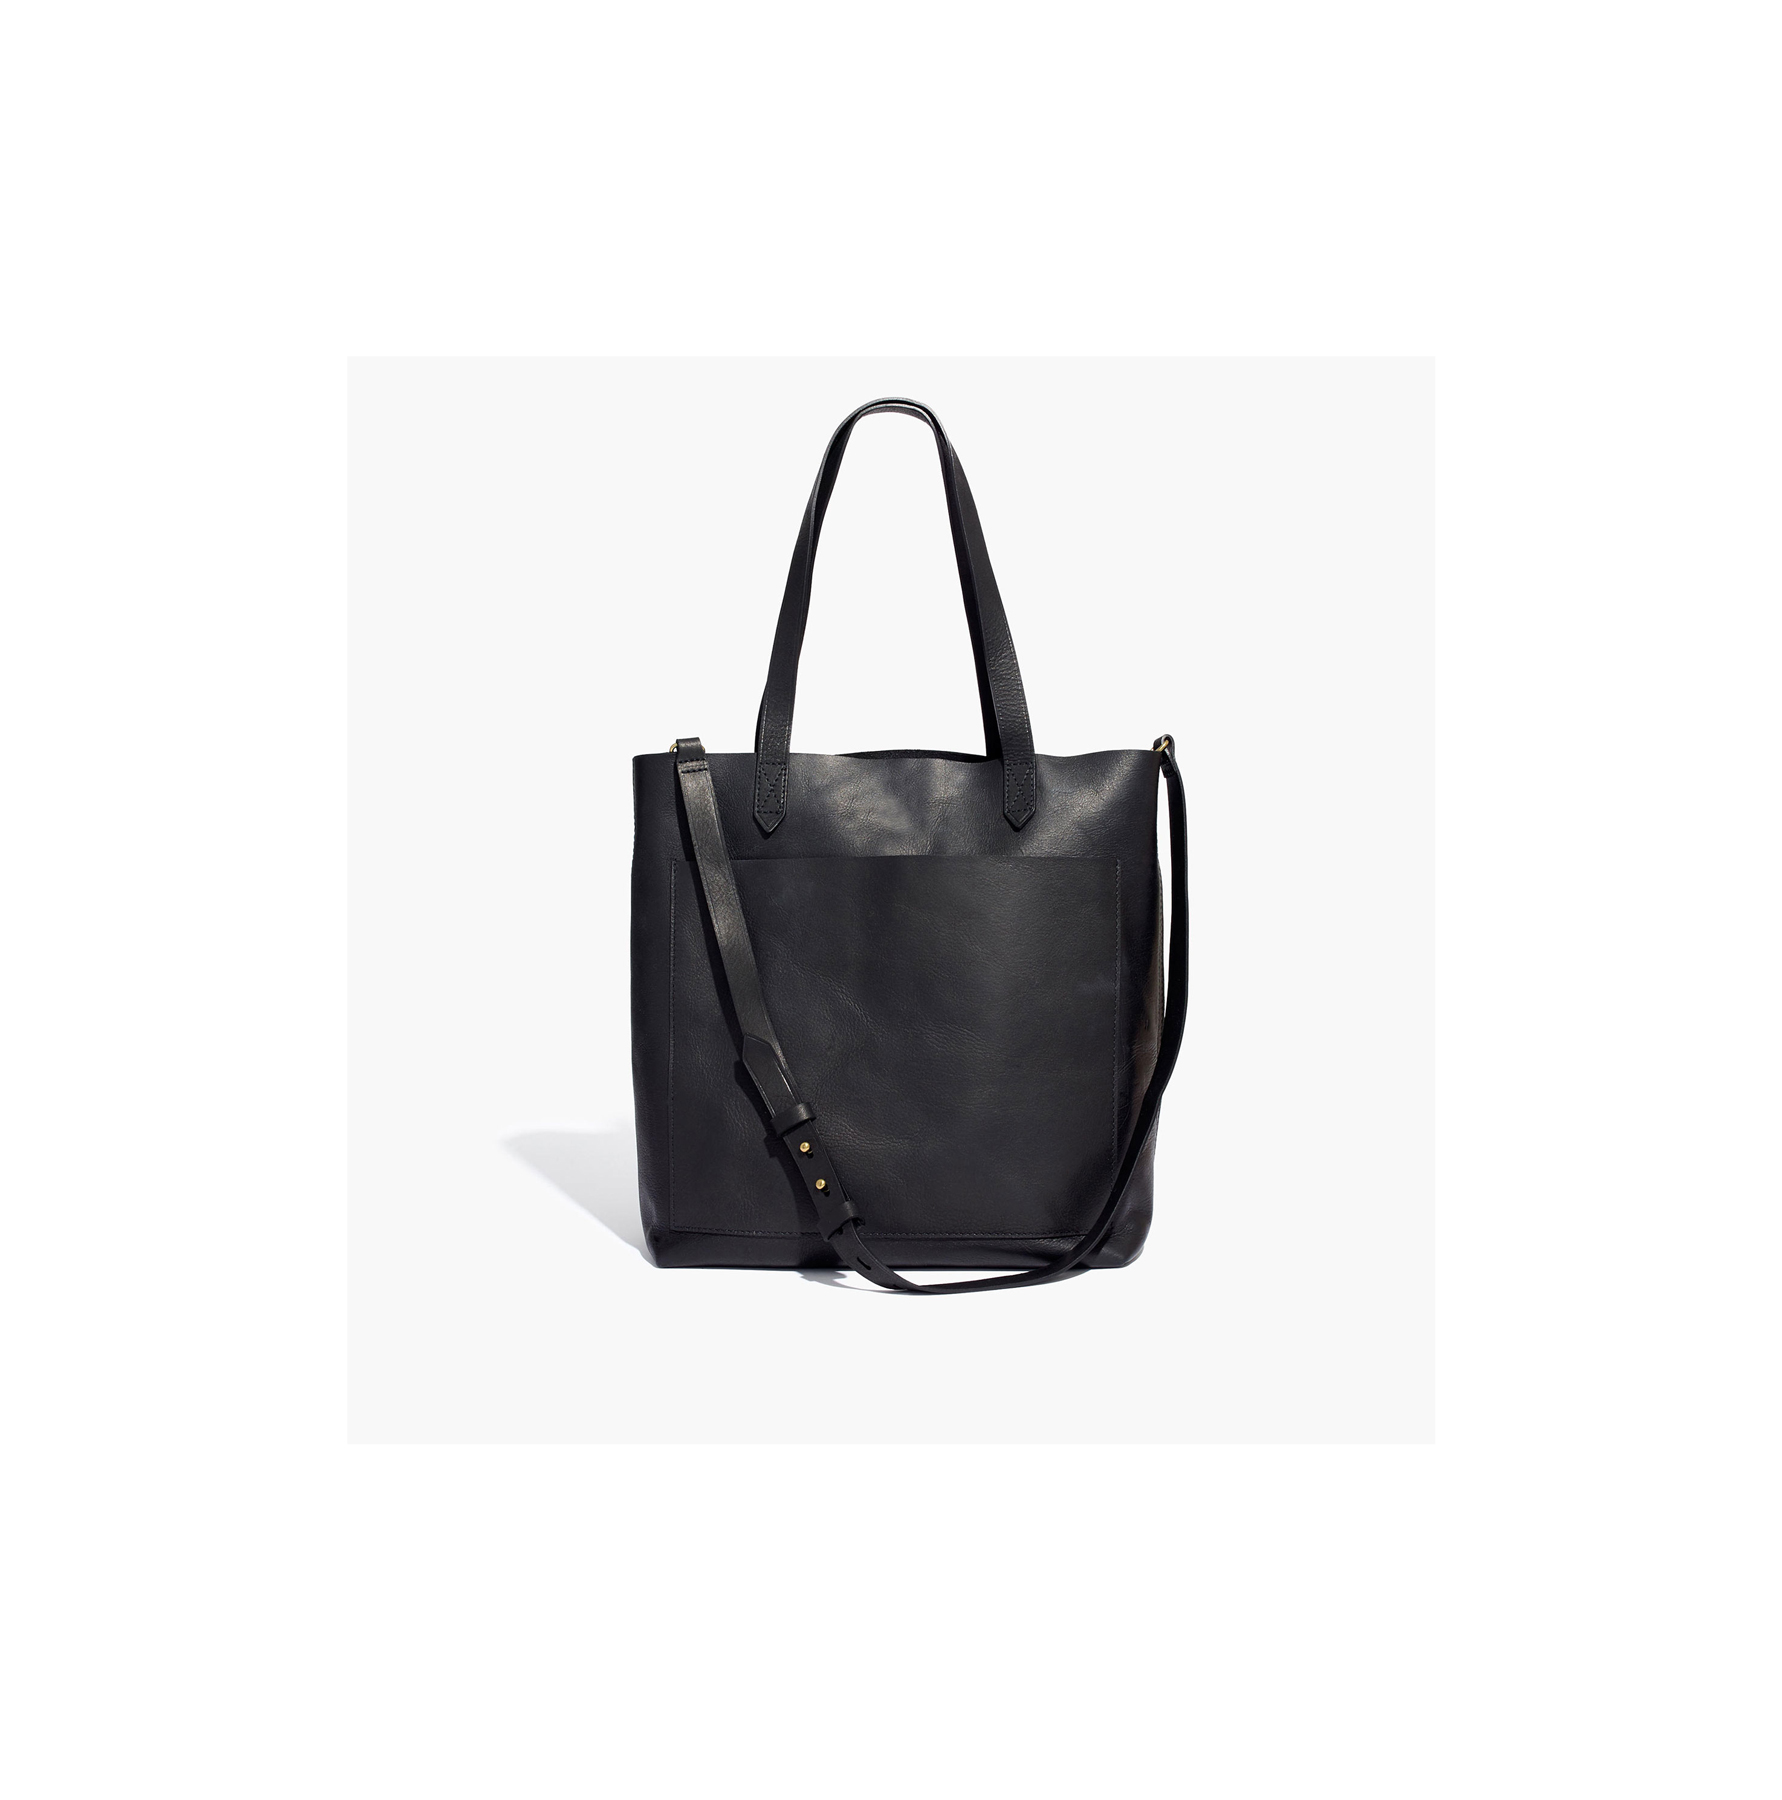 Best Work bags for women Madewell Black leather tote bag